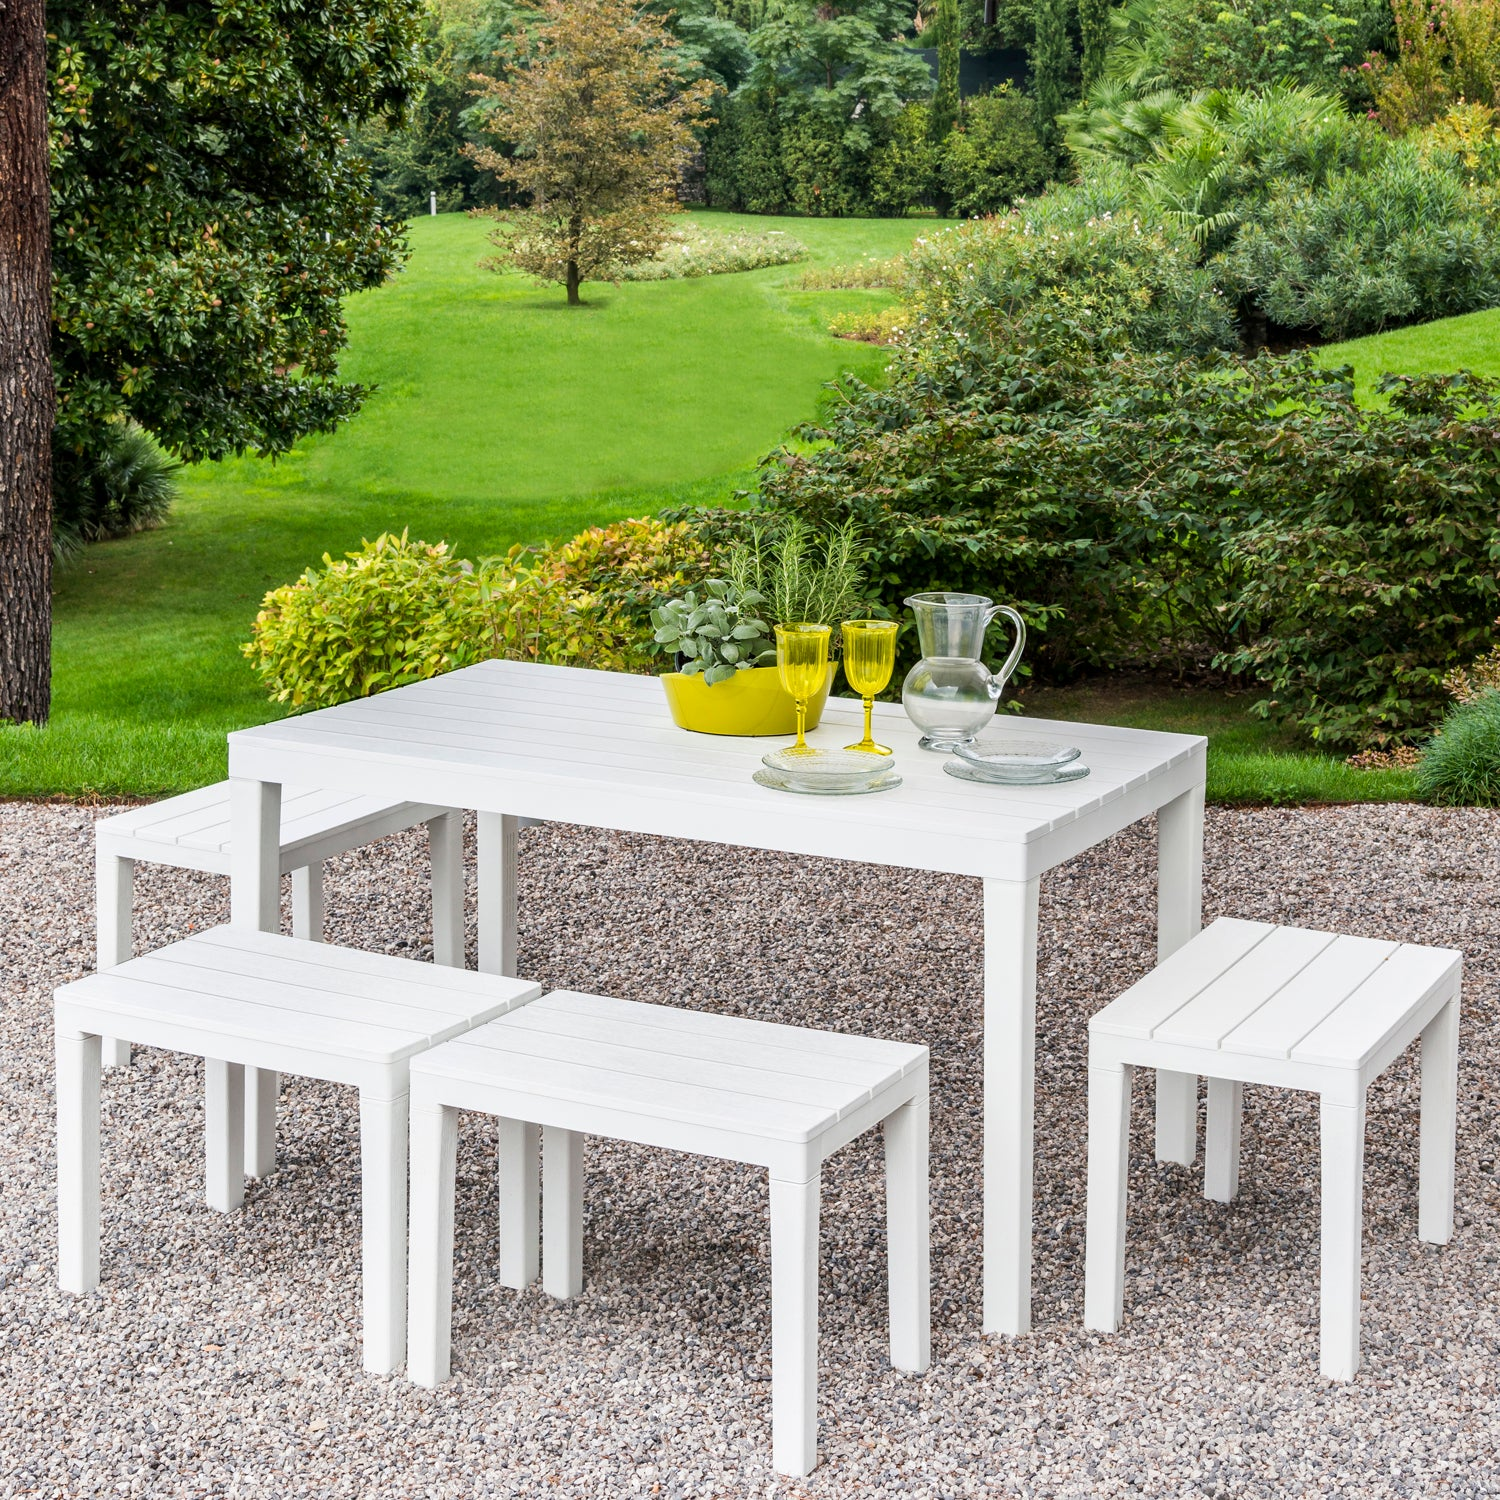 Trabella Roma Rectangular Garden Table With 4 Roma Bench Set in White - Ruby's Garden Boutique